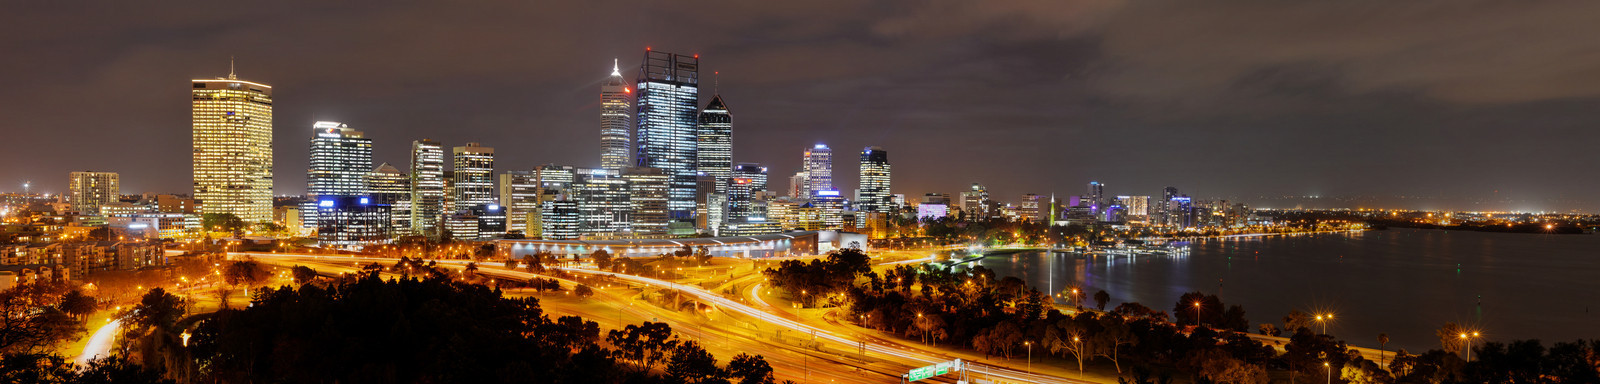 Panoramic Skyline of Perth at night.